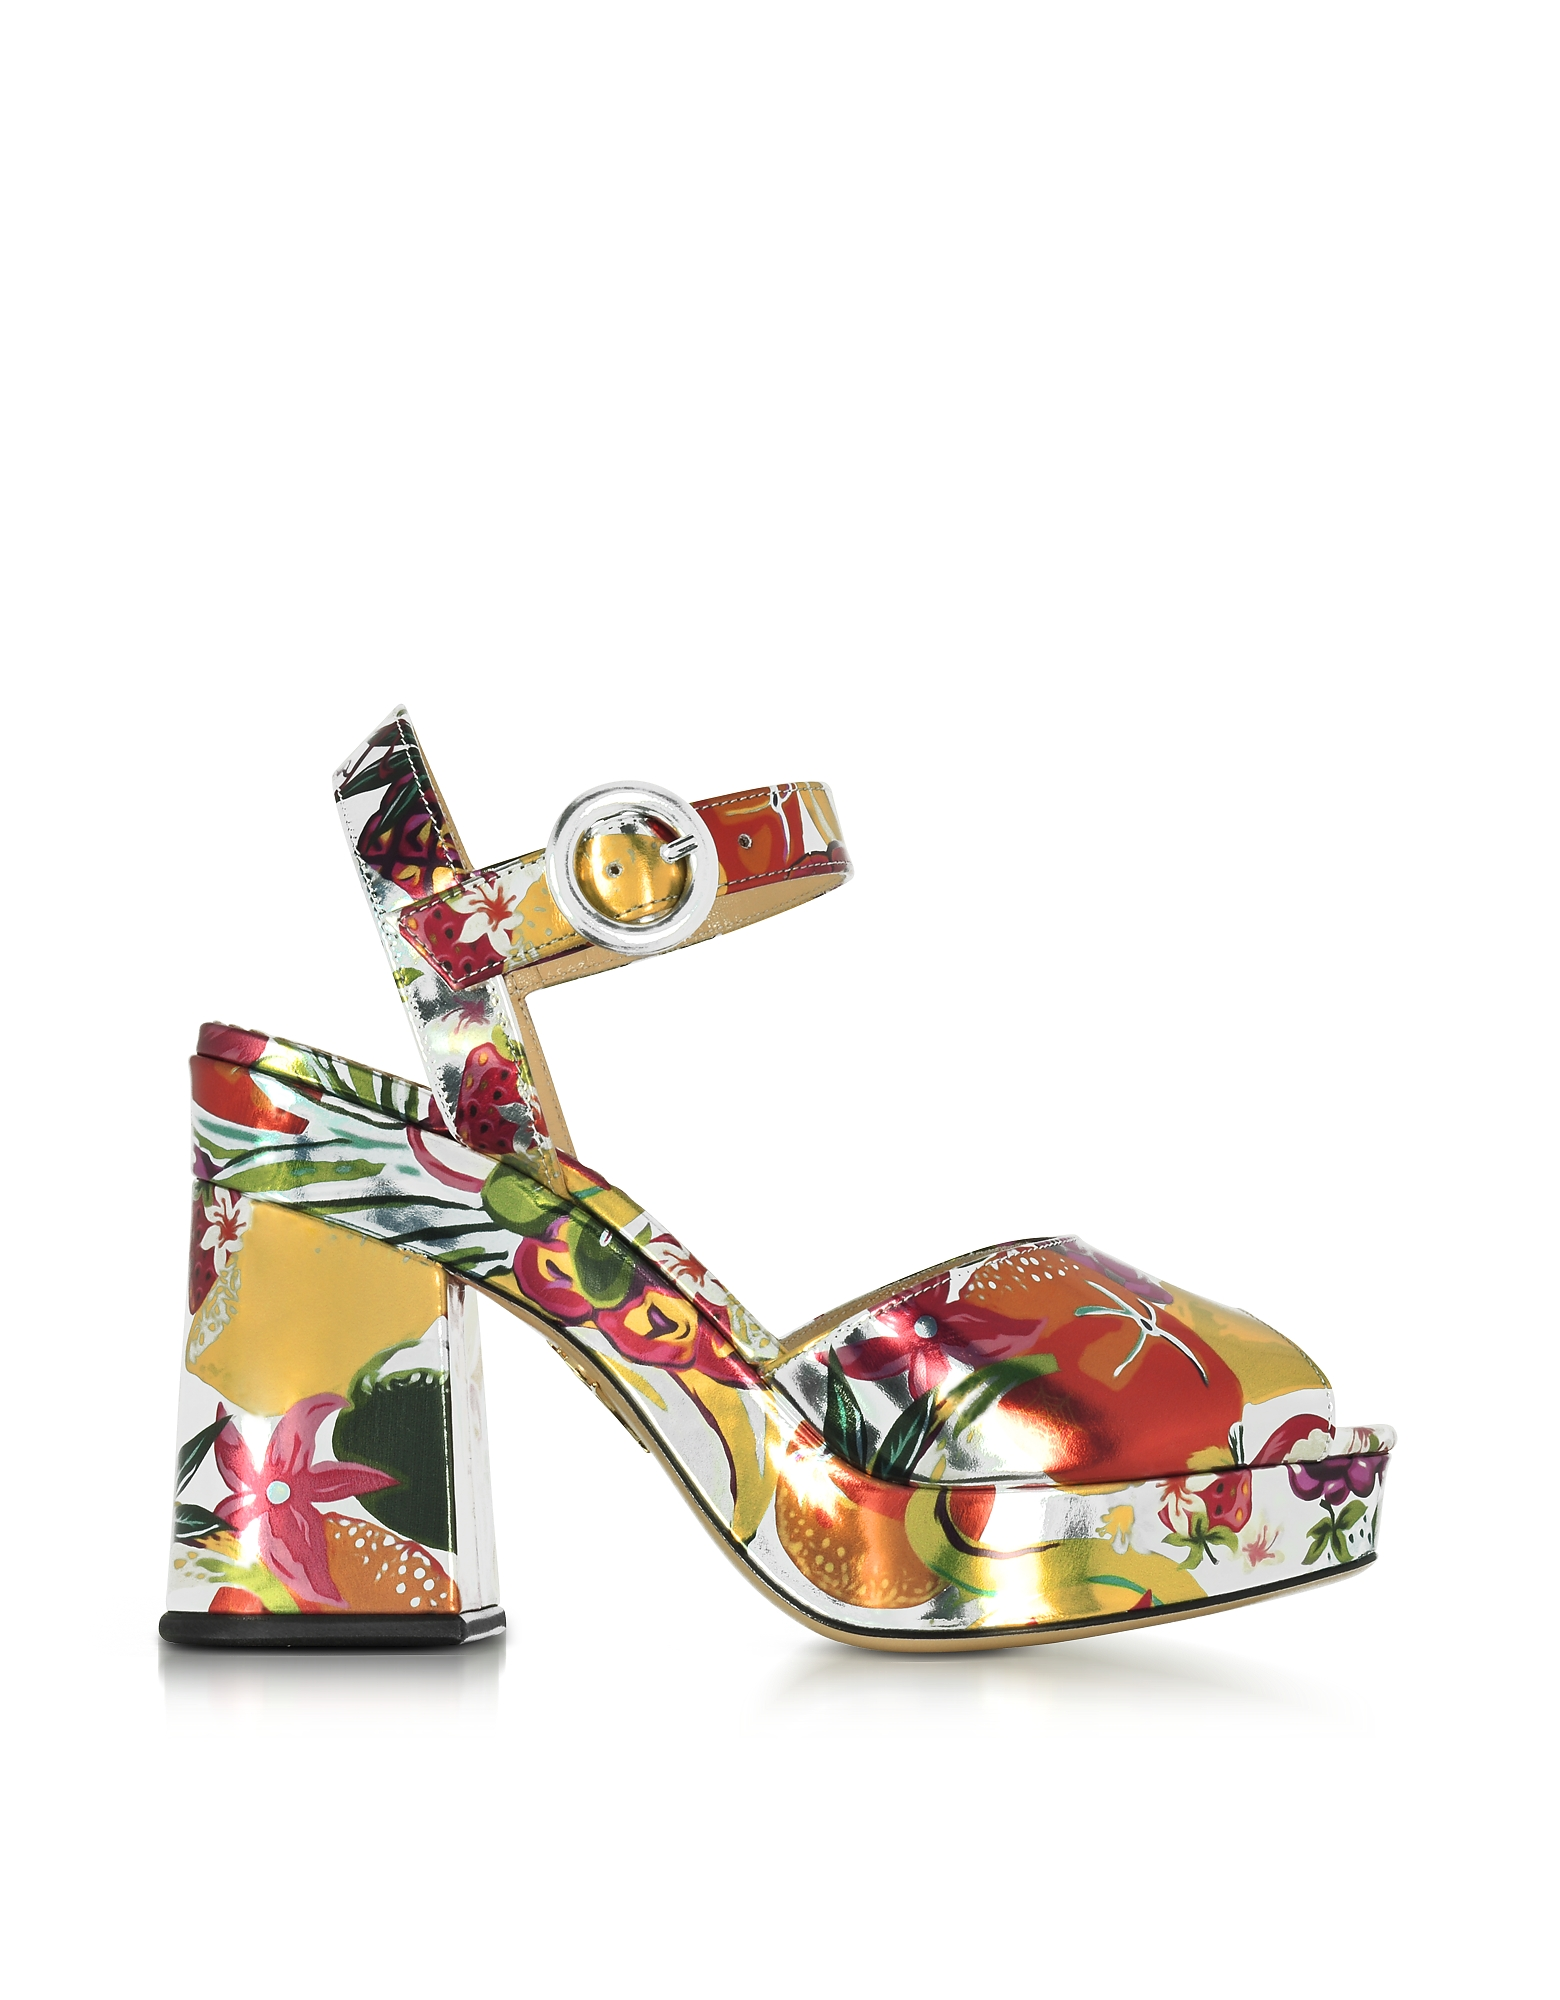 Charlotte Olympia Shoes, Into The Wild Fruit Salad Print Metallic Leather Platform Sandal